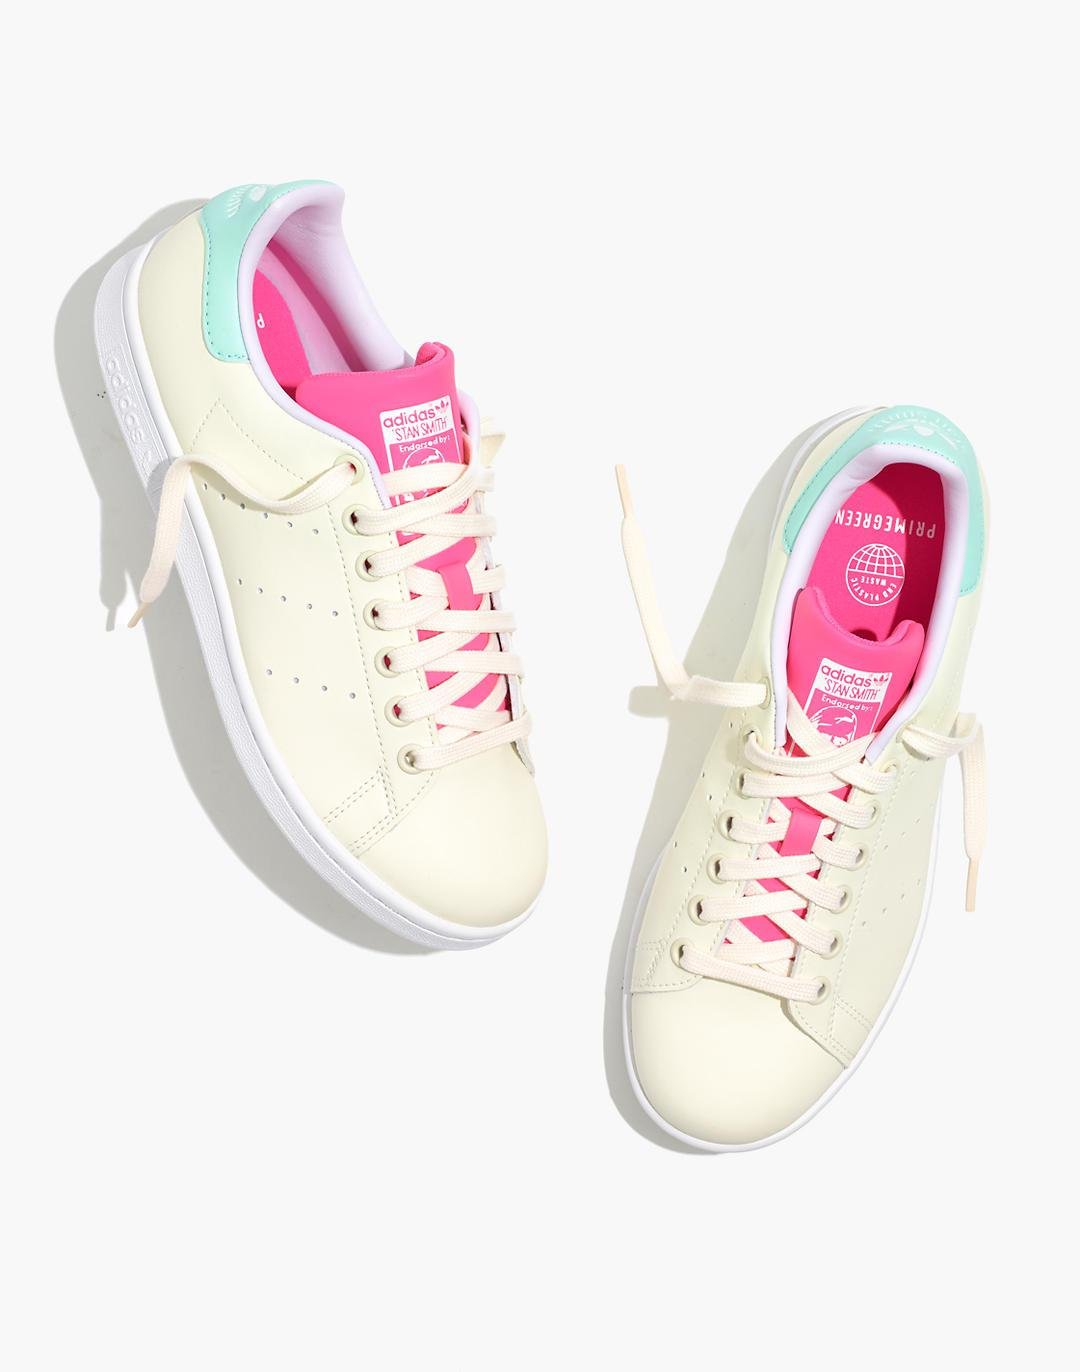 Adidas® Stan Smith™ Lace-Up Sneakers in Colorblock